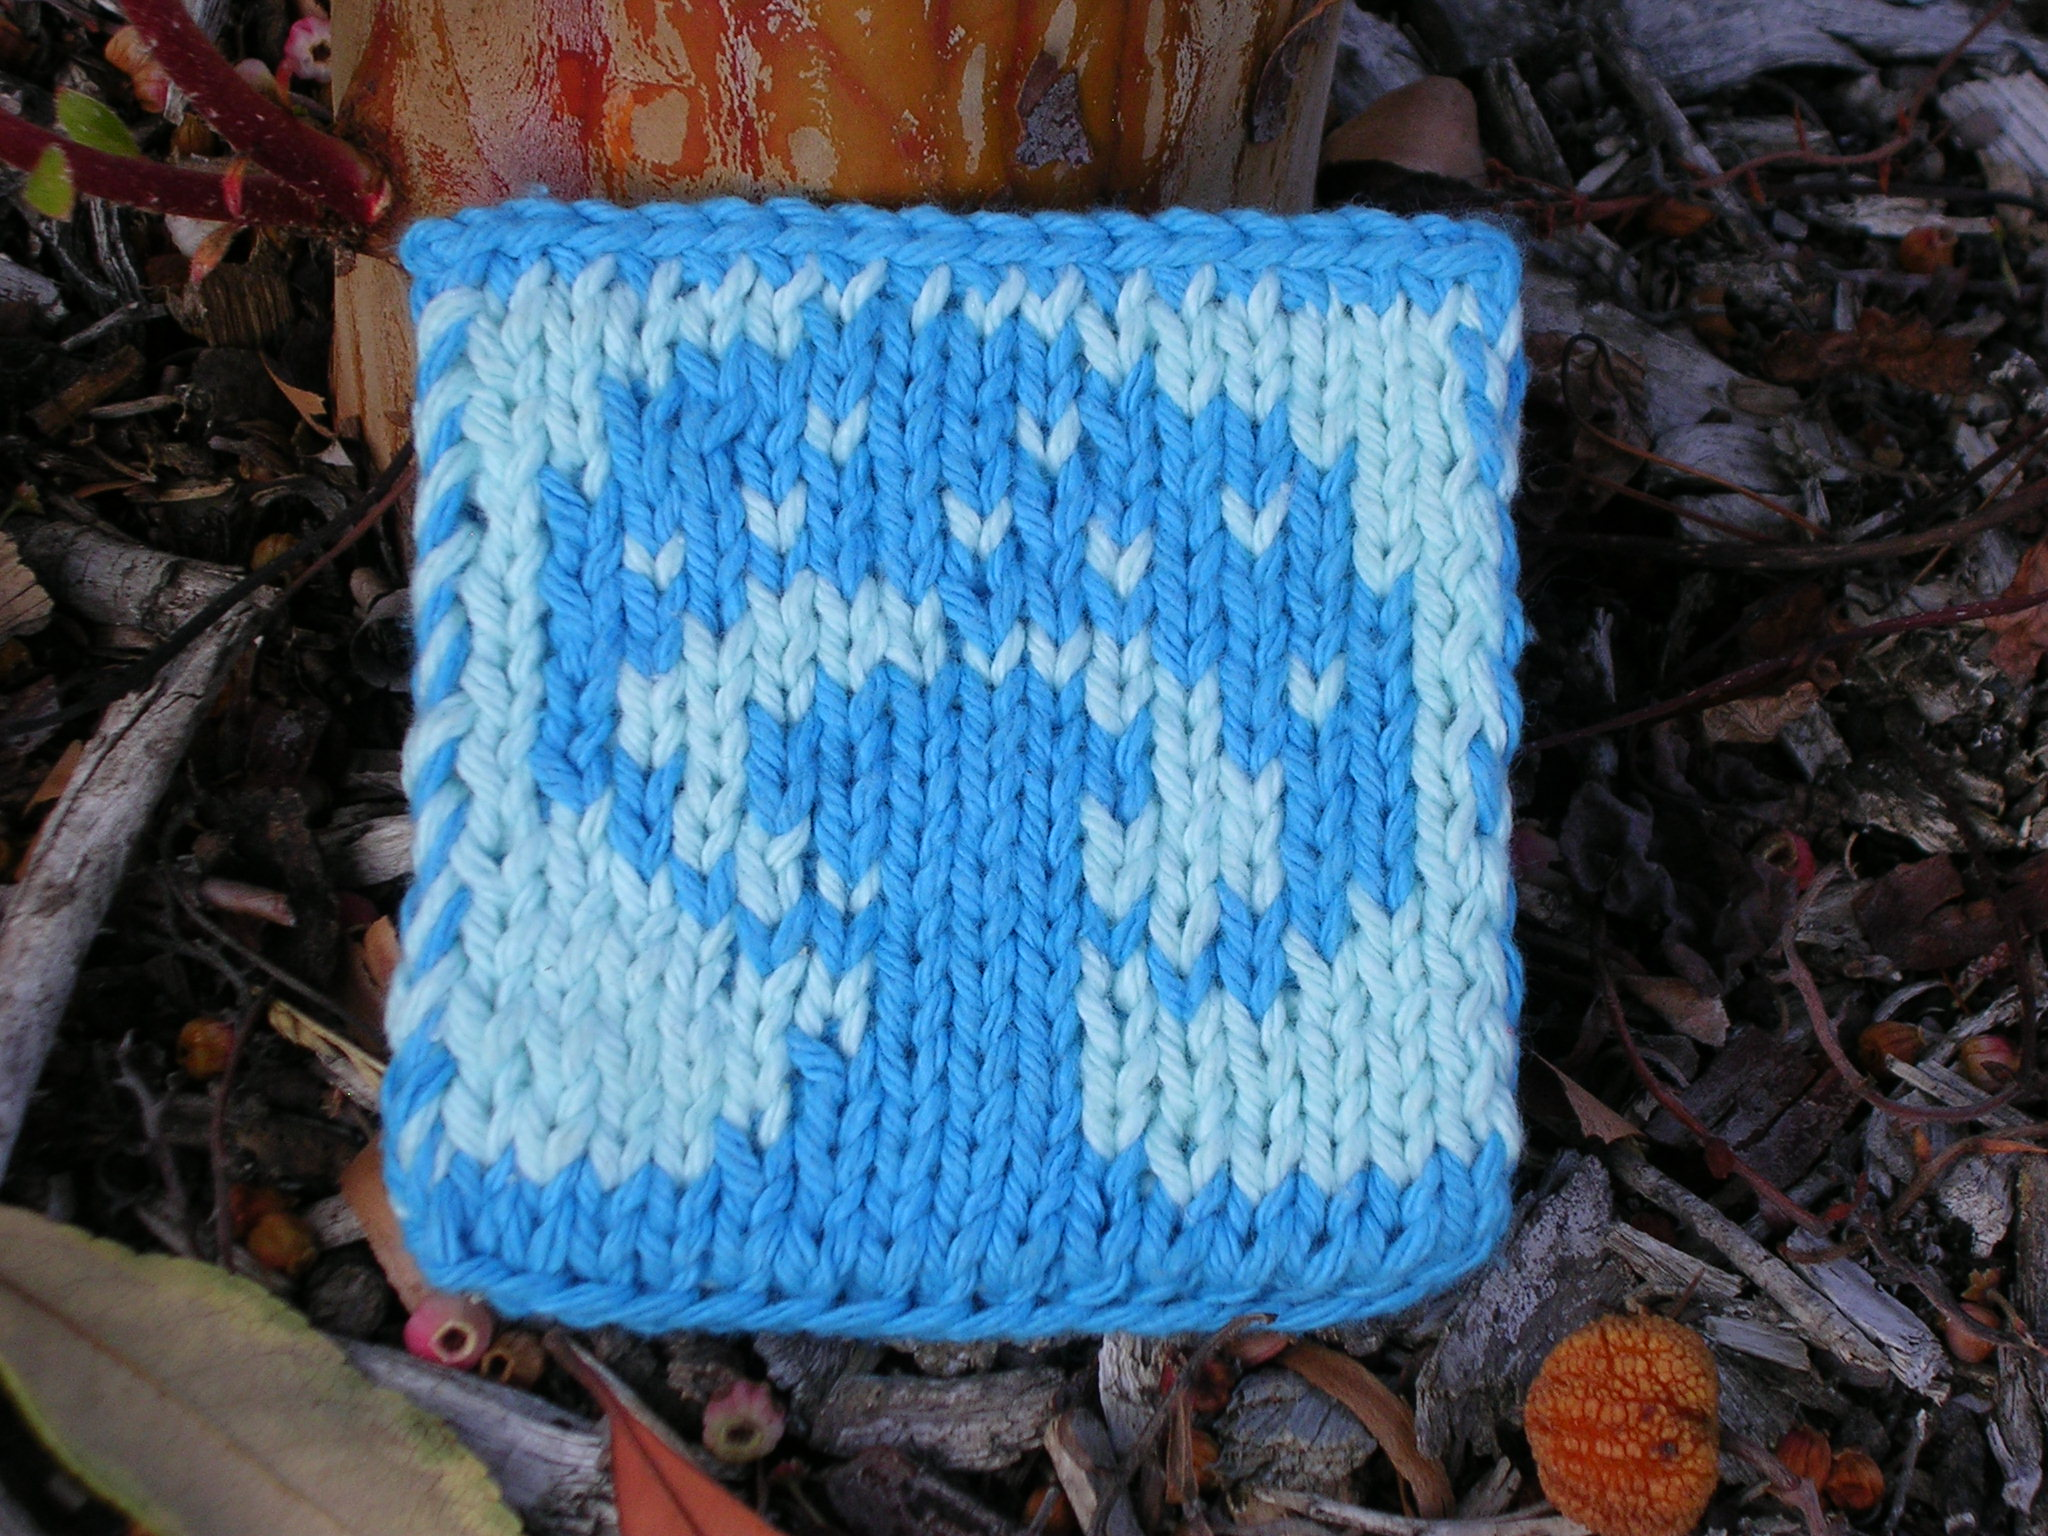 Free Knitting Patterns For Coasters : mushroom double knit coaster - free pattern sg-creations